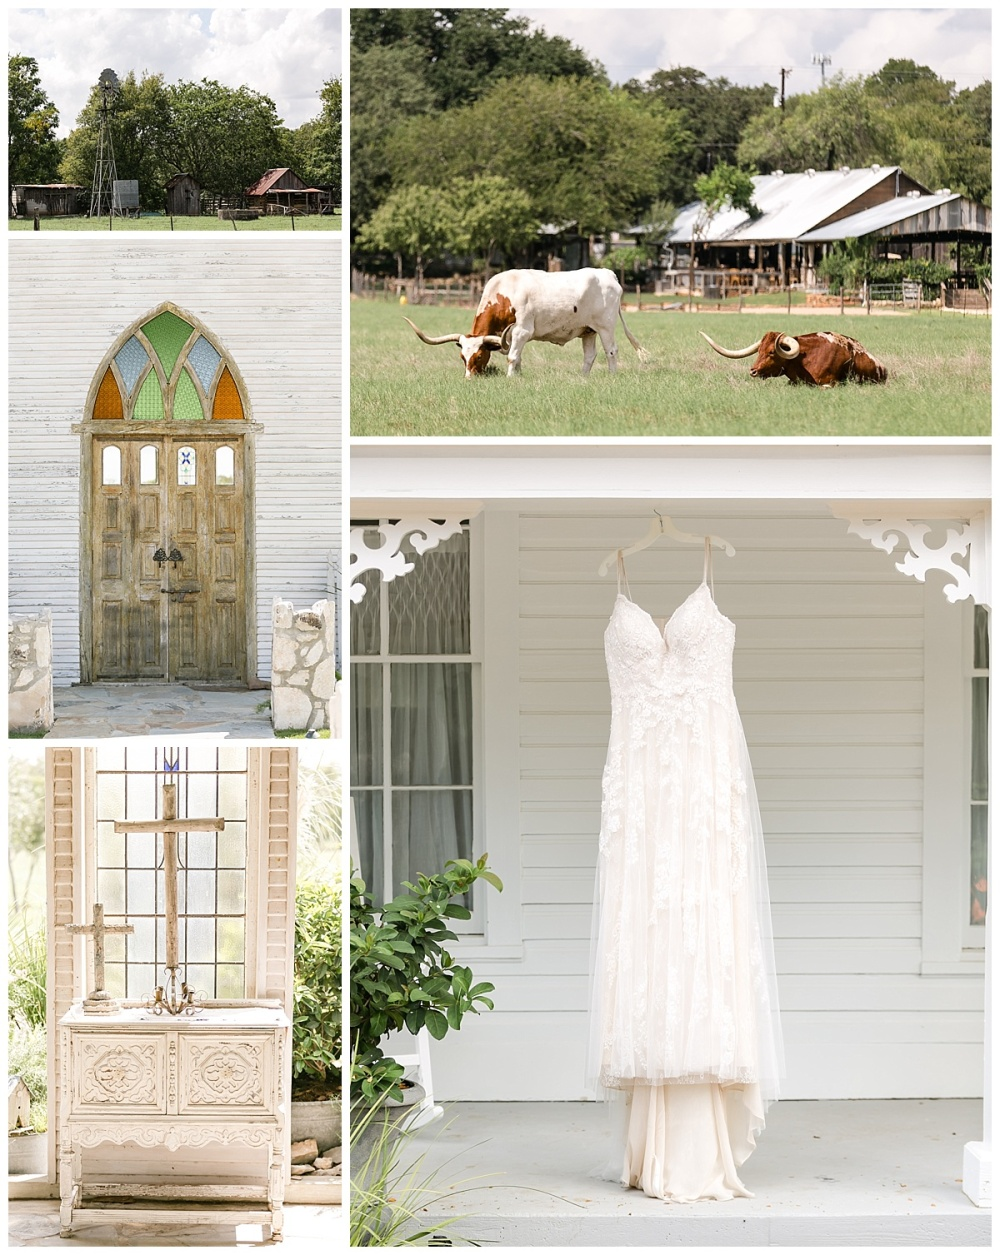 Texas-Wedding-Photographer-Gruene-Estate-Open-Air-Chapel-Carly-Barton-Photography-Katie-Nic_0002.jpg